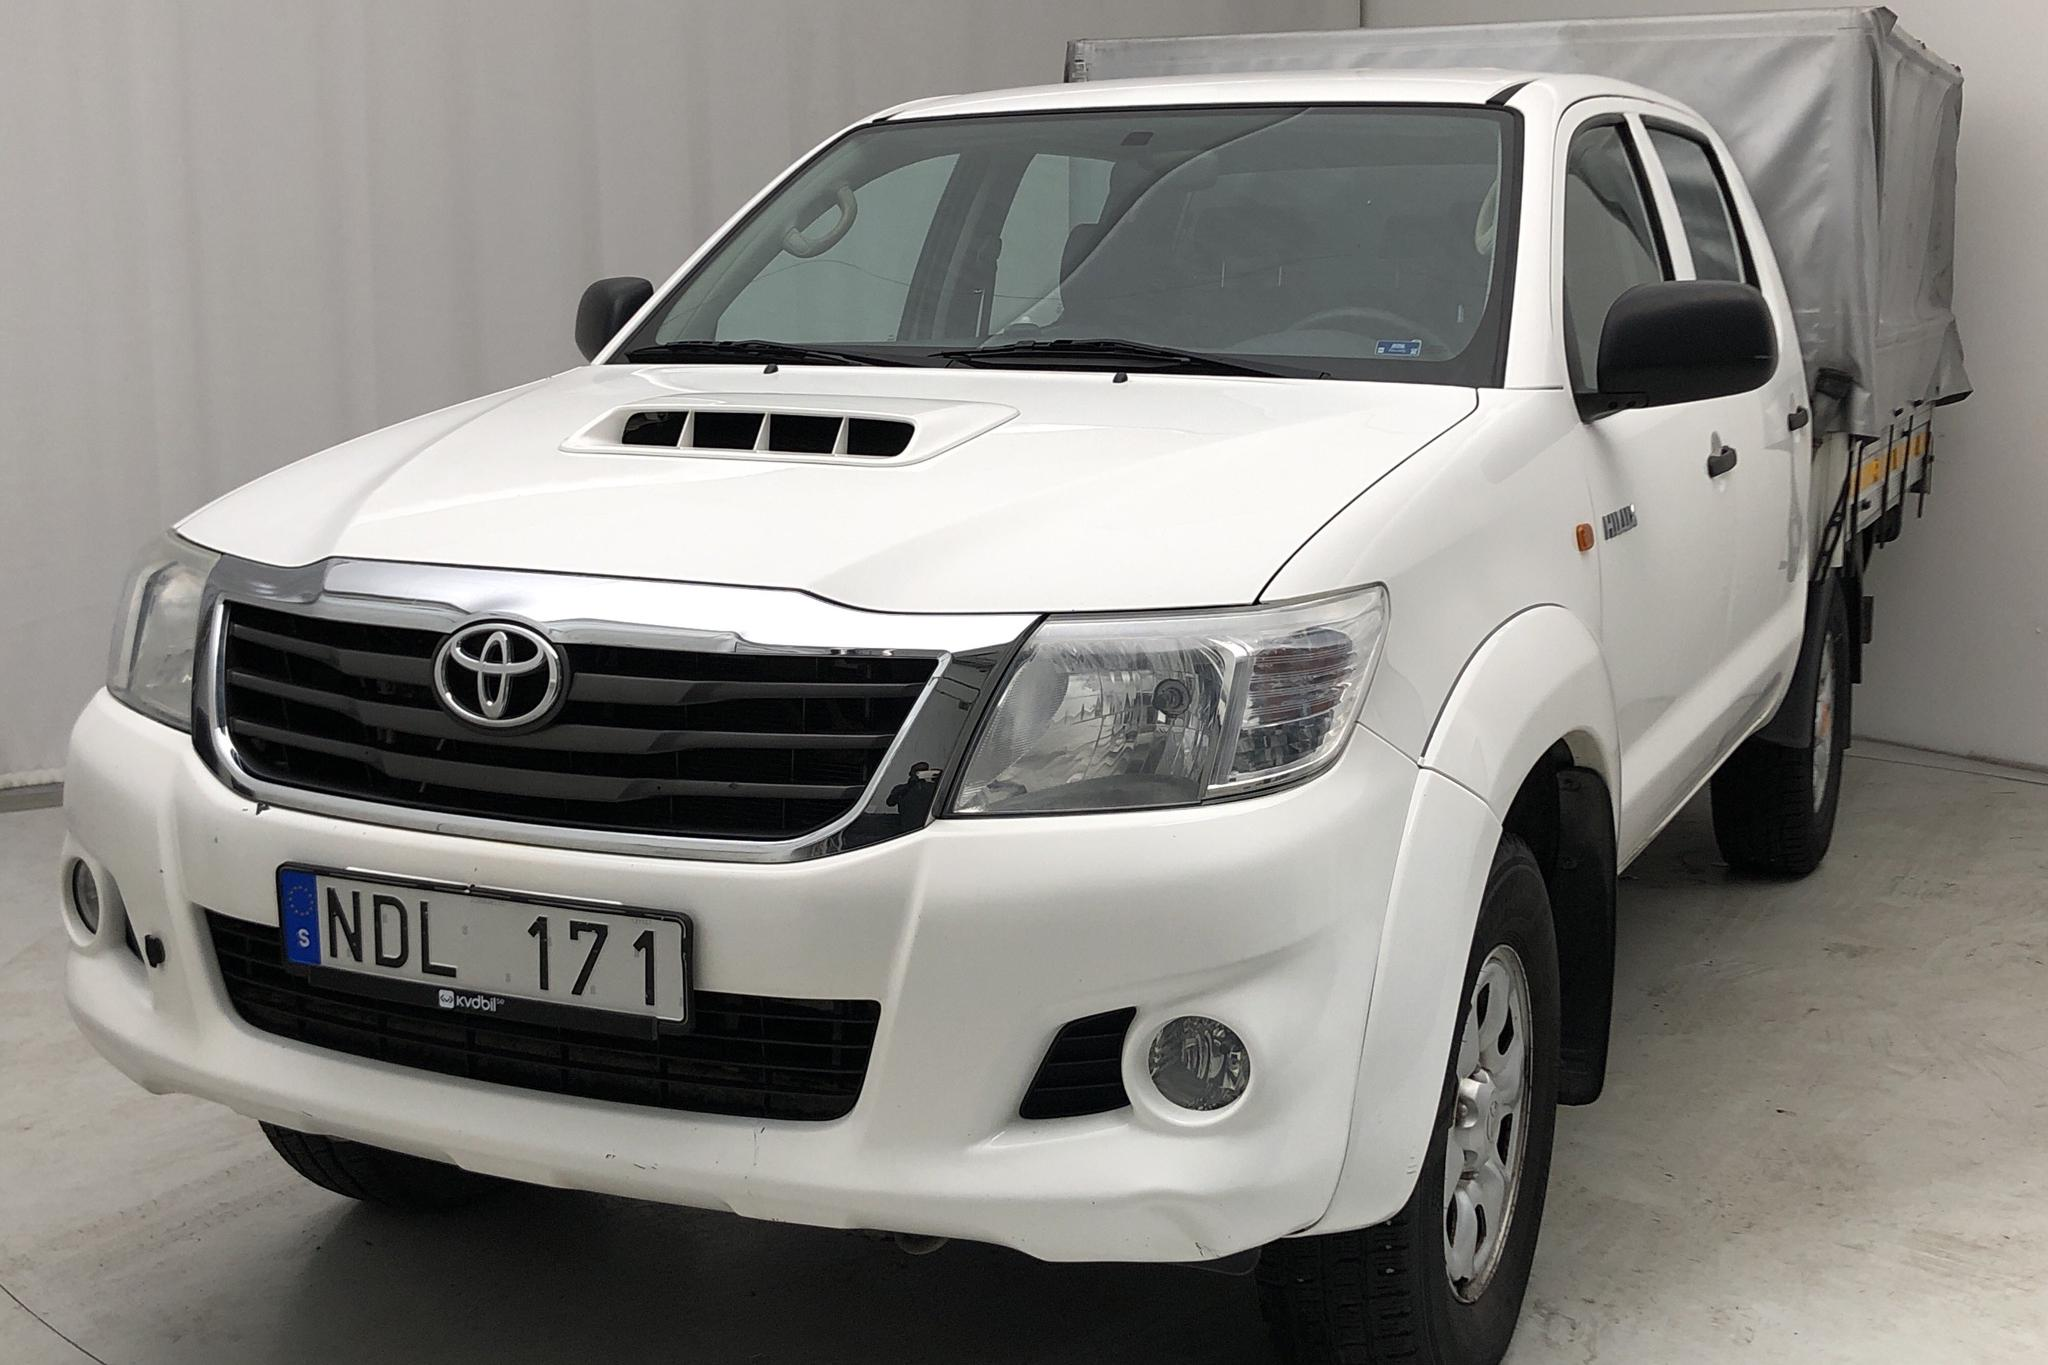 Toyota Hilux 2.5 4x4 (144hk) - 0 km - Manual - white - 2012